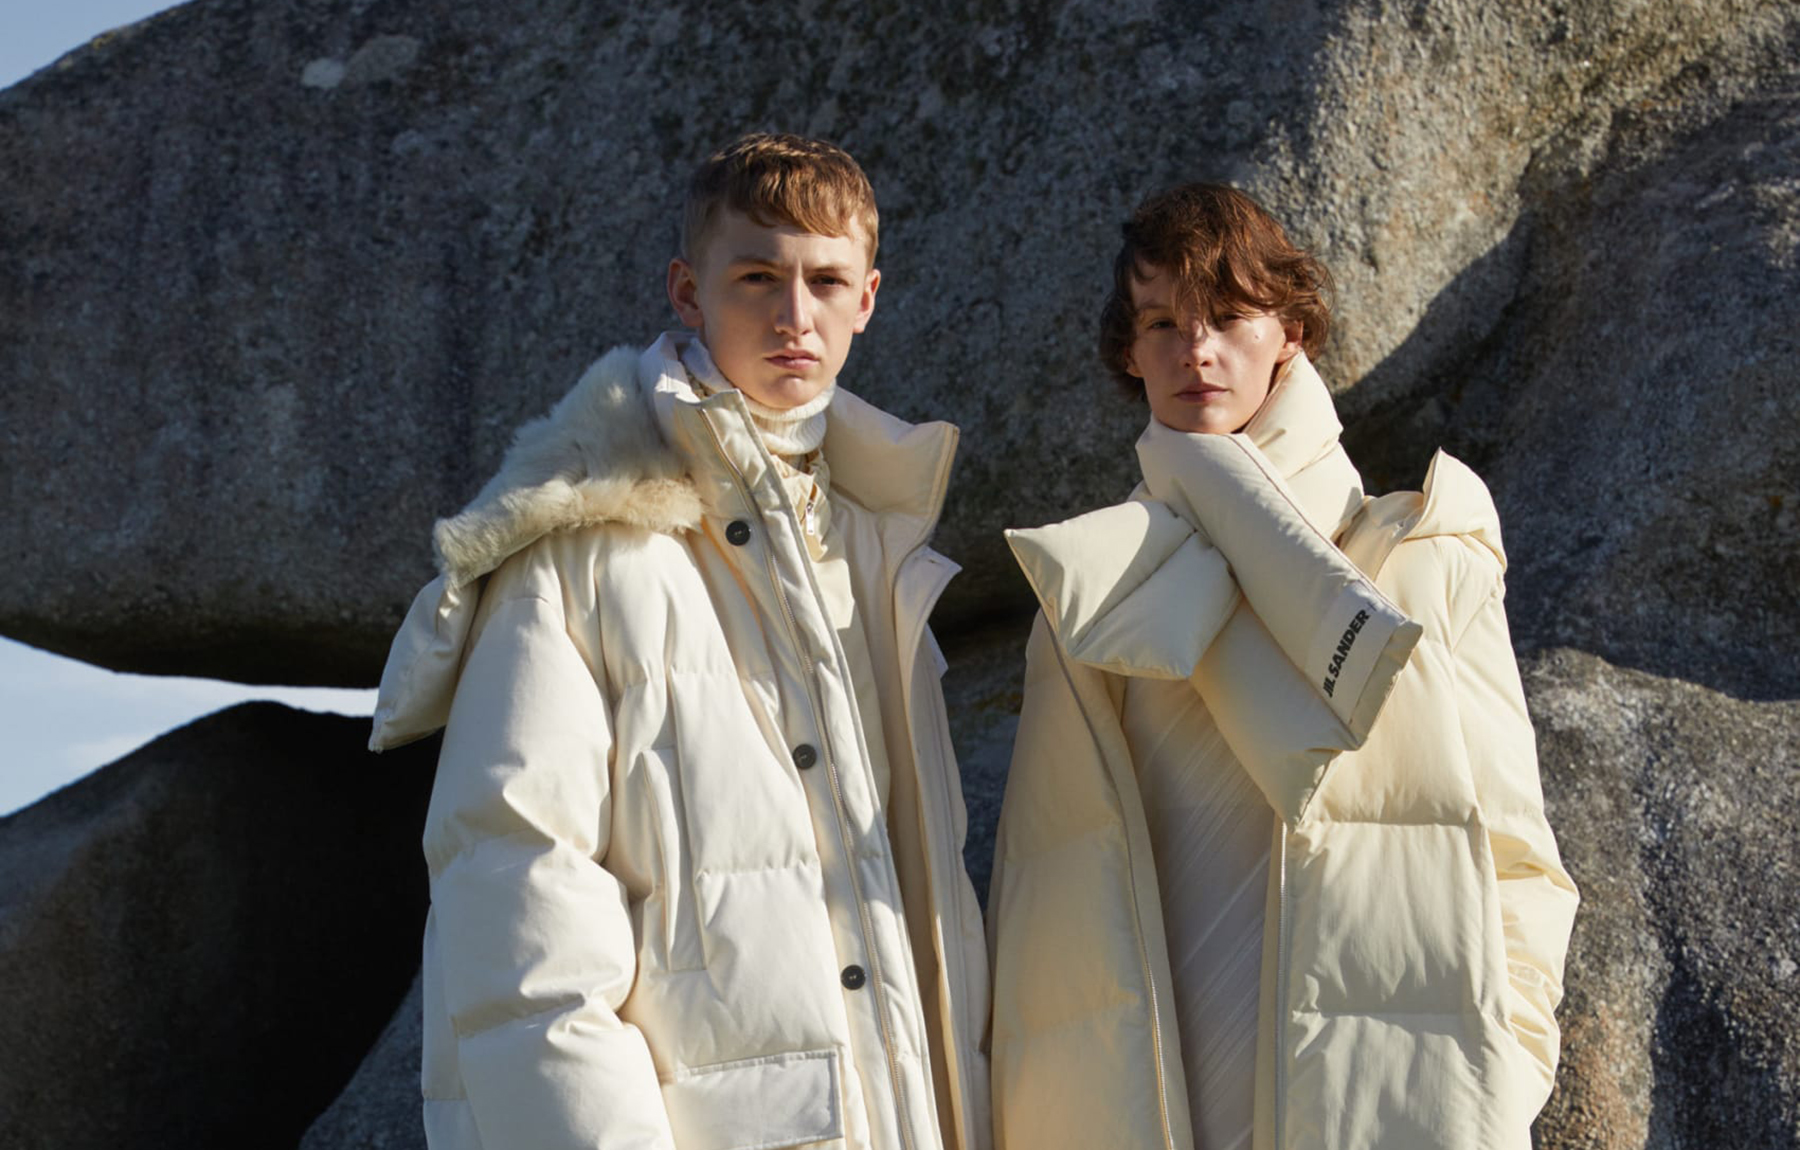 Jil Sander Introduces unisex collection Jil Sander+